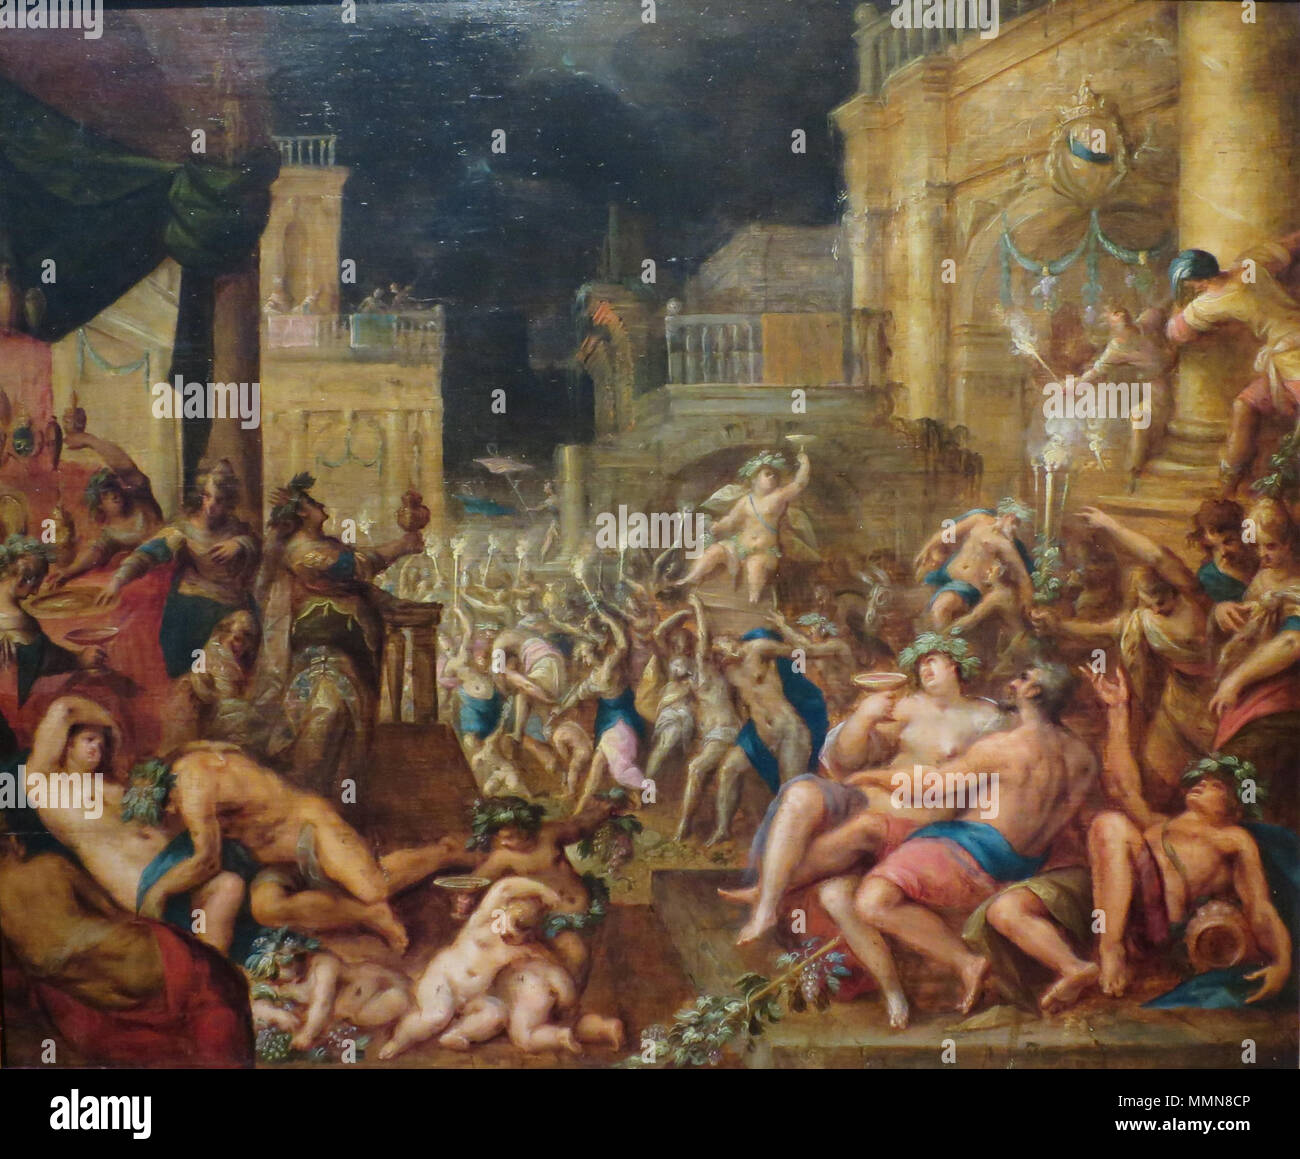 English: Midas's Feast in Honor of Bacchus and Silenus . 1598. 'Midas's Feast in Honor of Bacchus and Silenus' by Gillis van Valckenborch Stock Photo